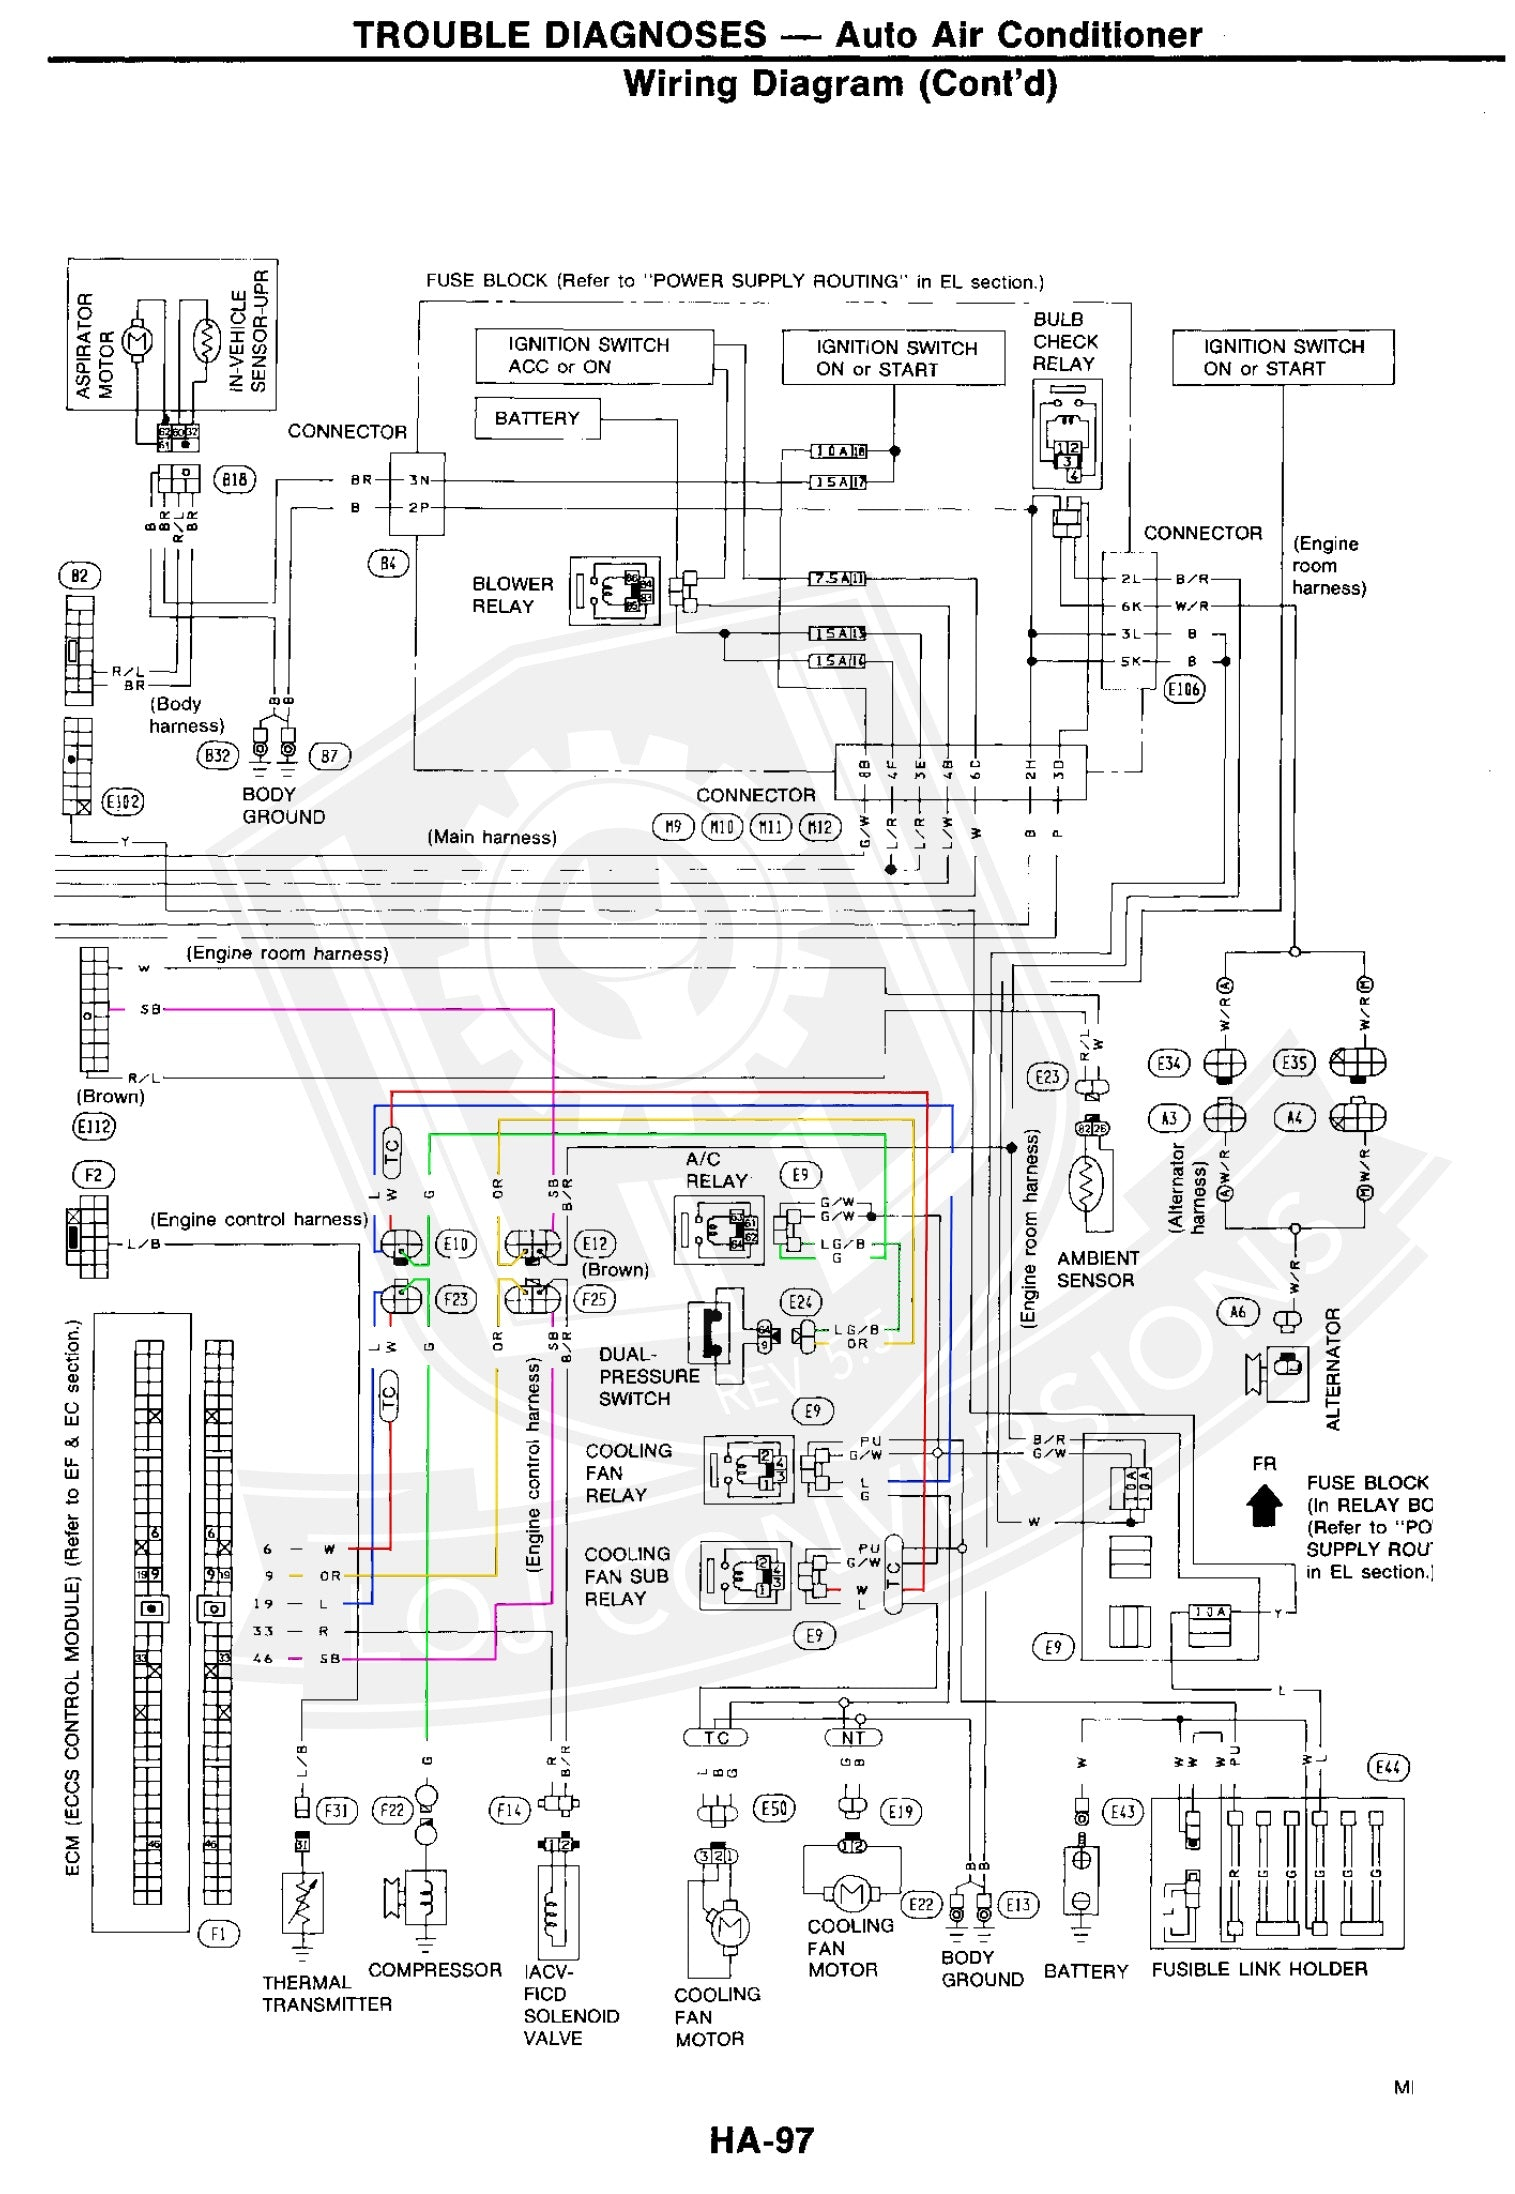 300ZX_AC_Wiring_Engine_Swap_02?9464186101000764173 92 240sx engine diagram wiring diagram library